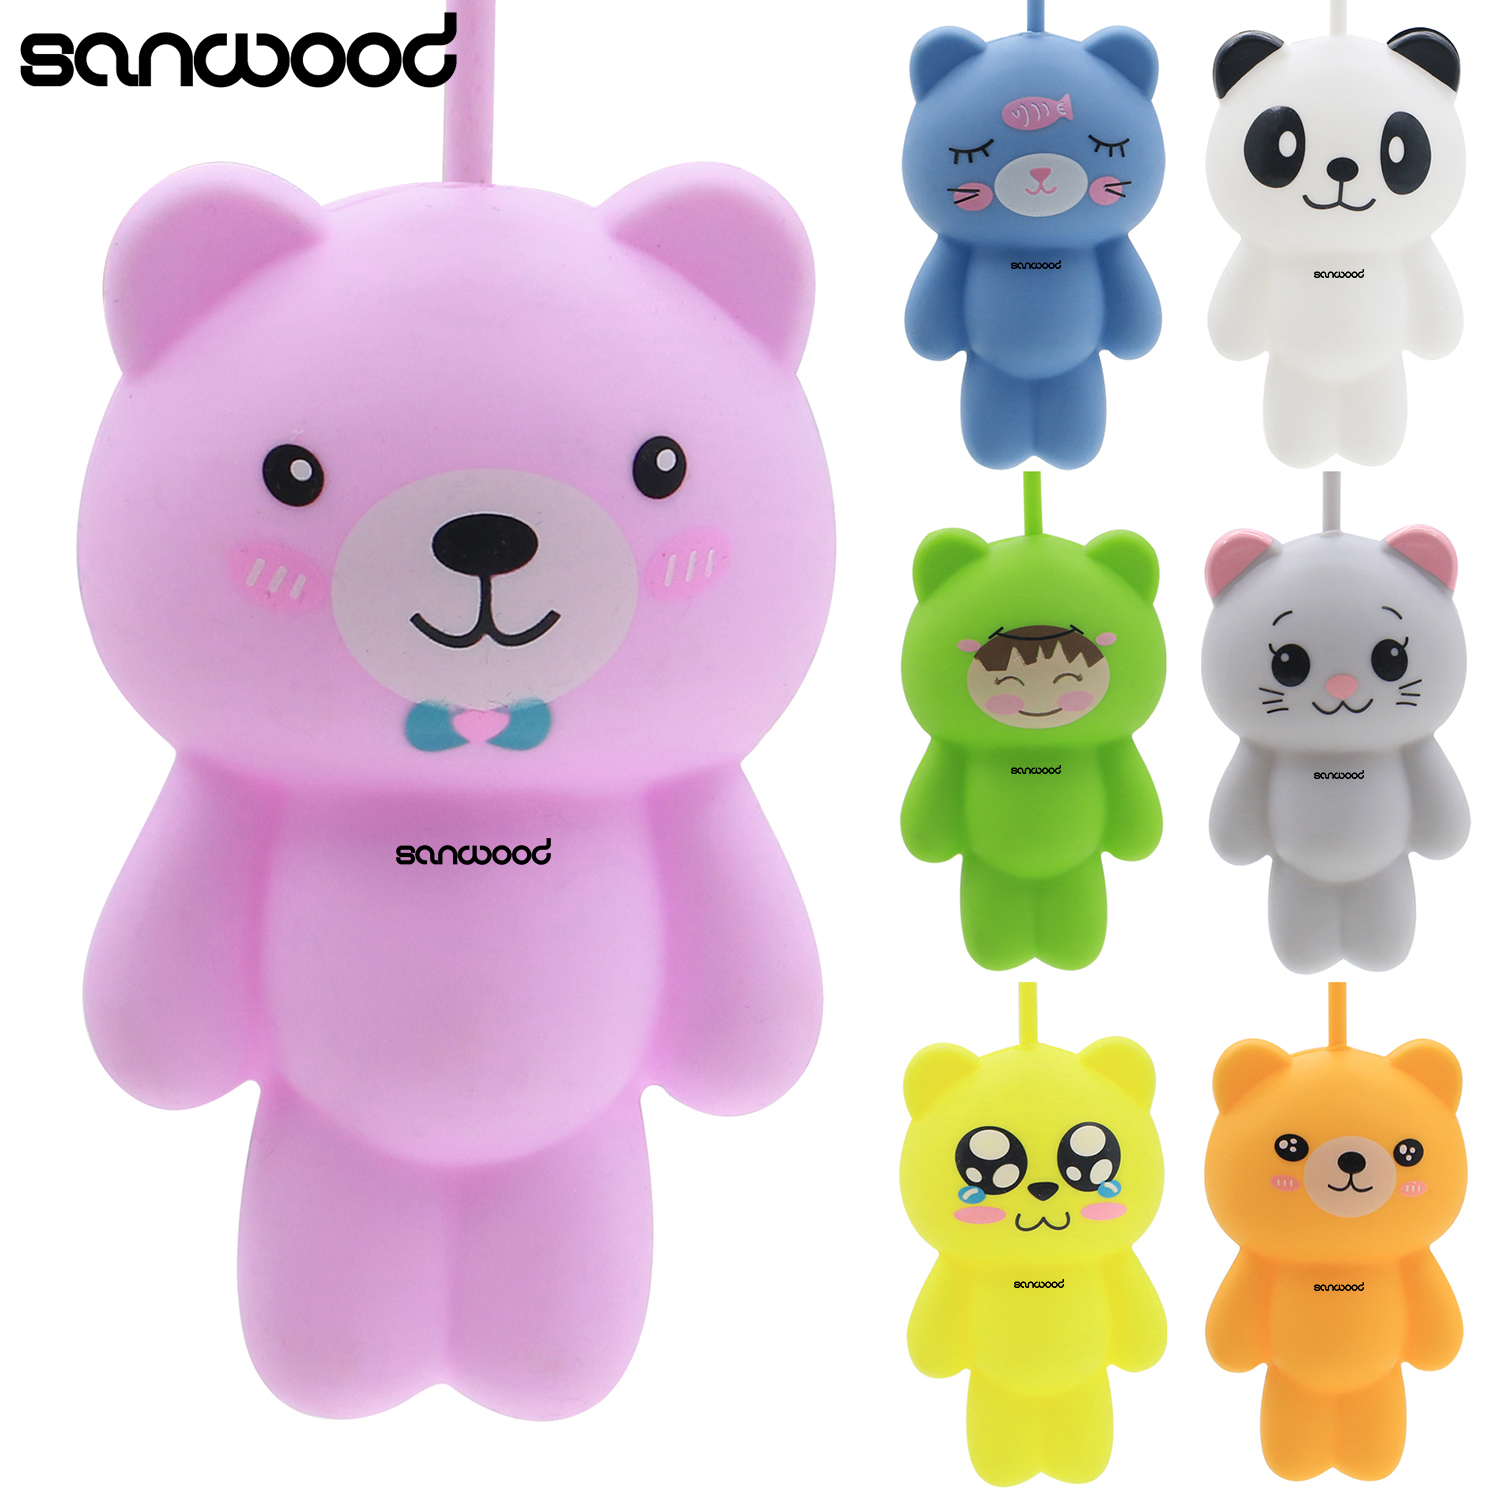 Cute Cartoon Animal Cat Silicone Key Holder Case Bag Wallet Pendant 9XRX полочки для ванной комнаты animal silicone toothbrush holder cute animal silicone toothbrush holder